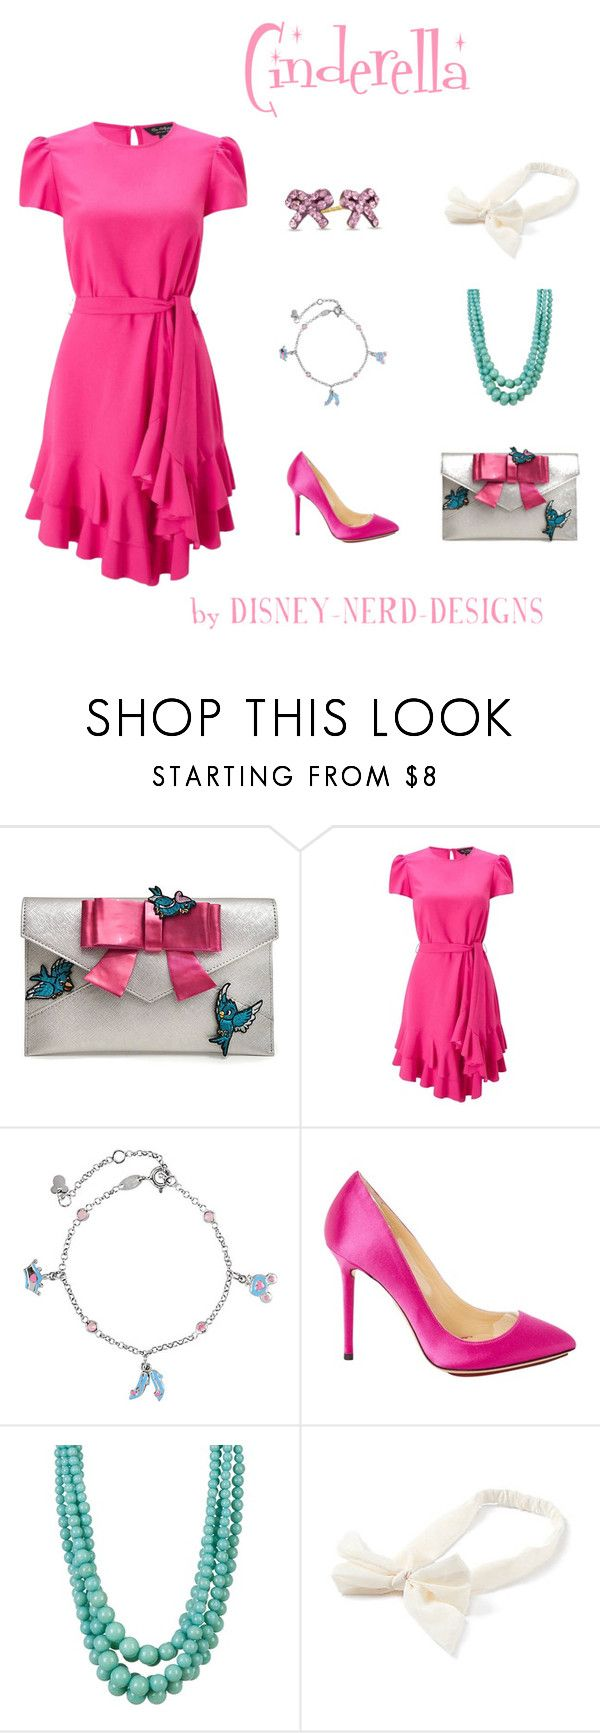 """""""Cinderella Disney Bound"""" by disney-nerd-designs ❤ liked on Polyvore featuring Danielle Nicole, Miss Selfridge, Charlotte Olympia, Cara Accessories, Pink, disney, cinderella and disneybound"""